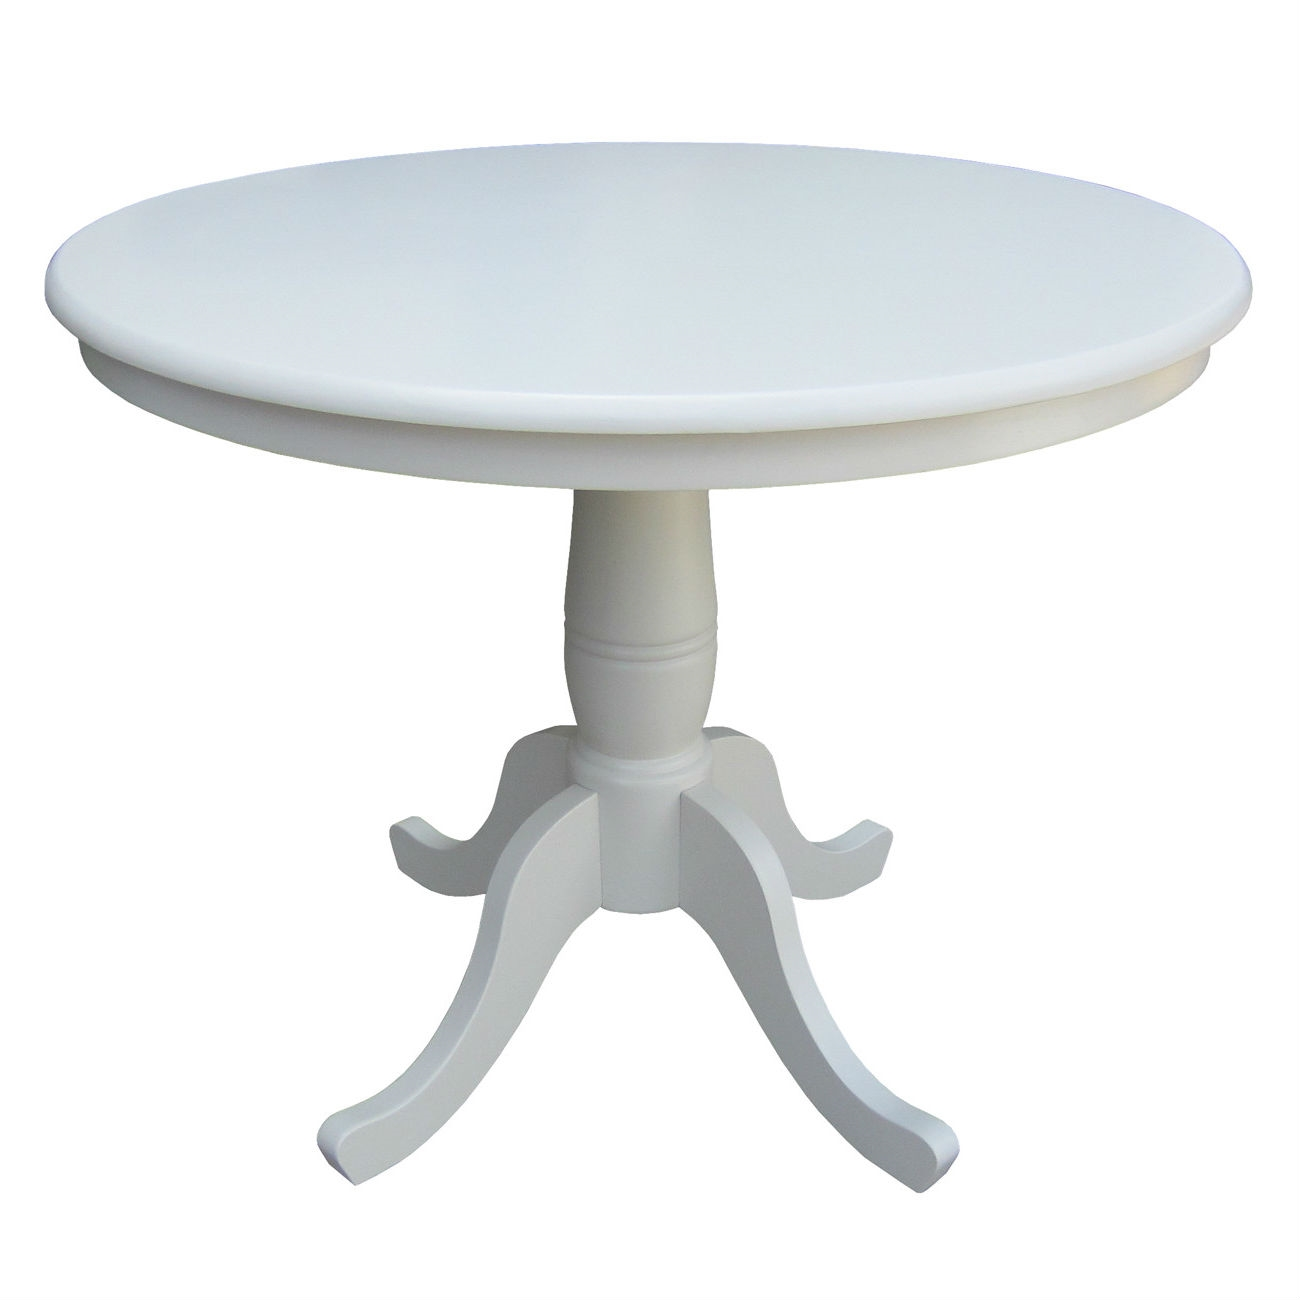 Round Inch Dining Table In White Wood Finish And Pedestal Base - 30 inch table base